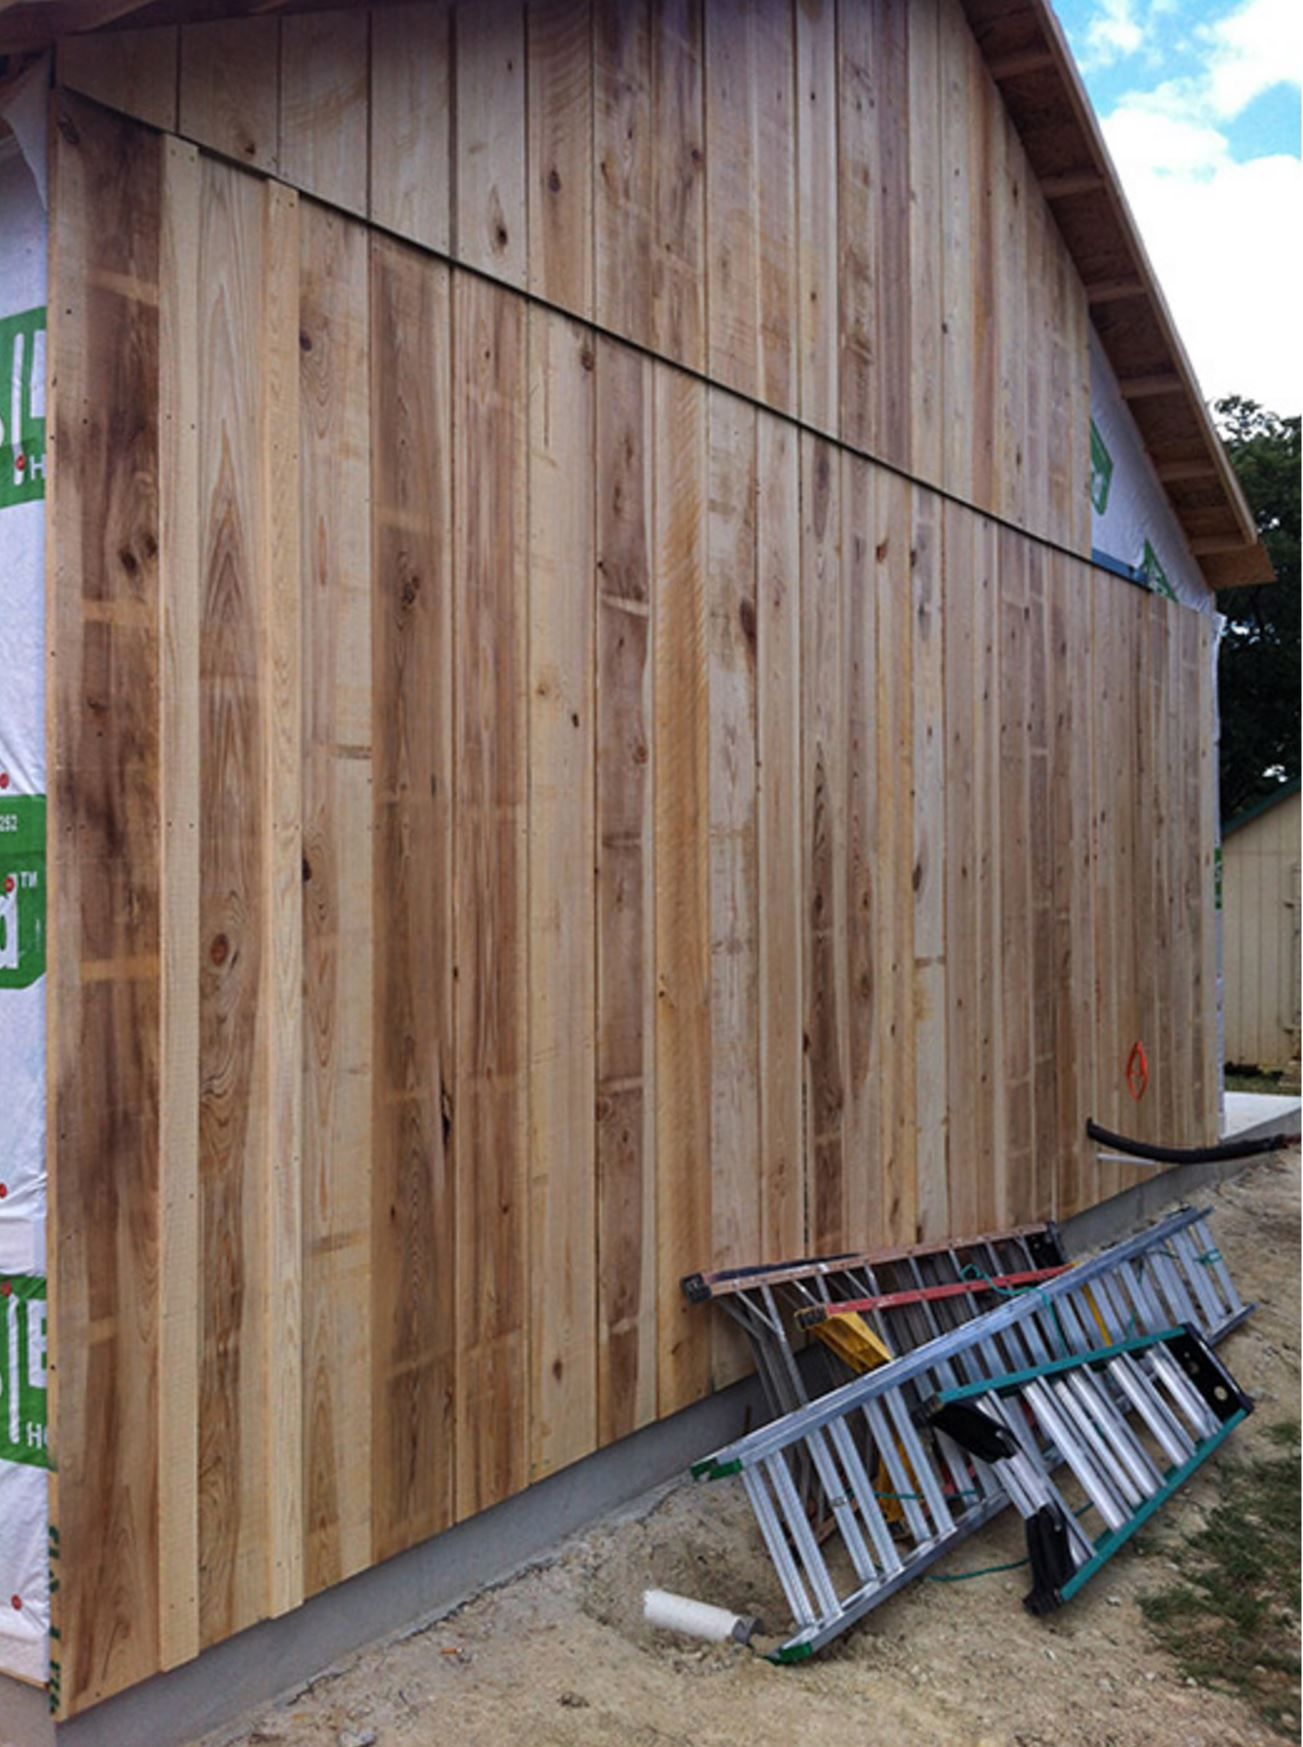 Cypress No 2 Grade Board And Batten Siding Wood Siding Siding Styles Barn Siding